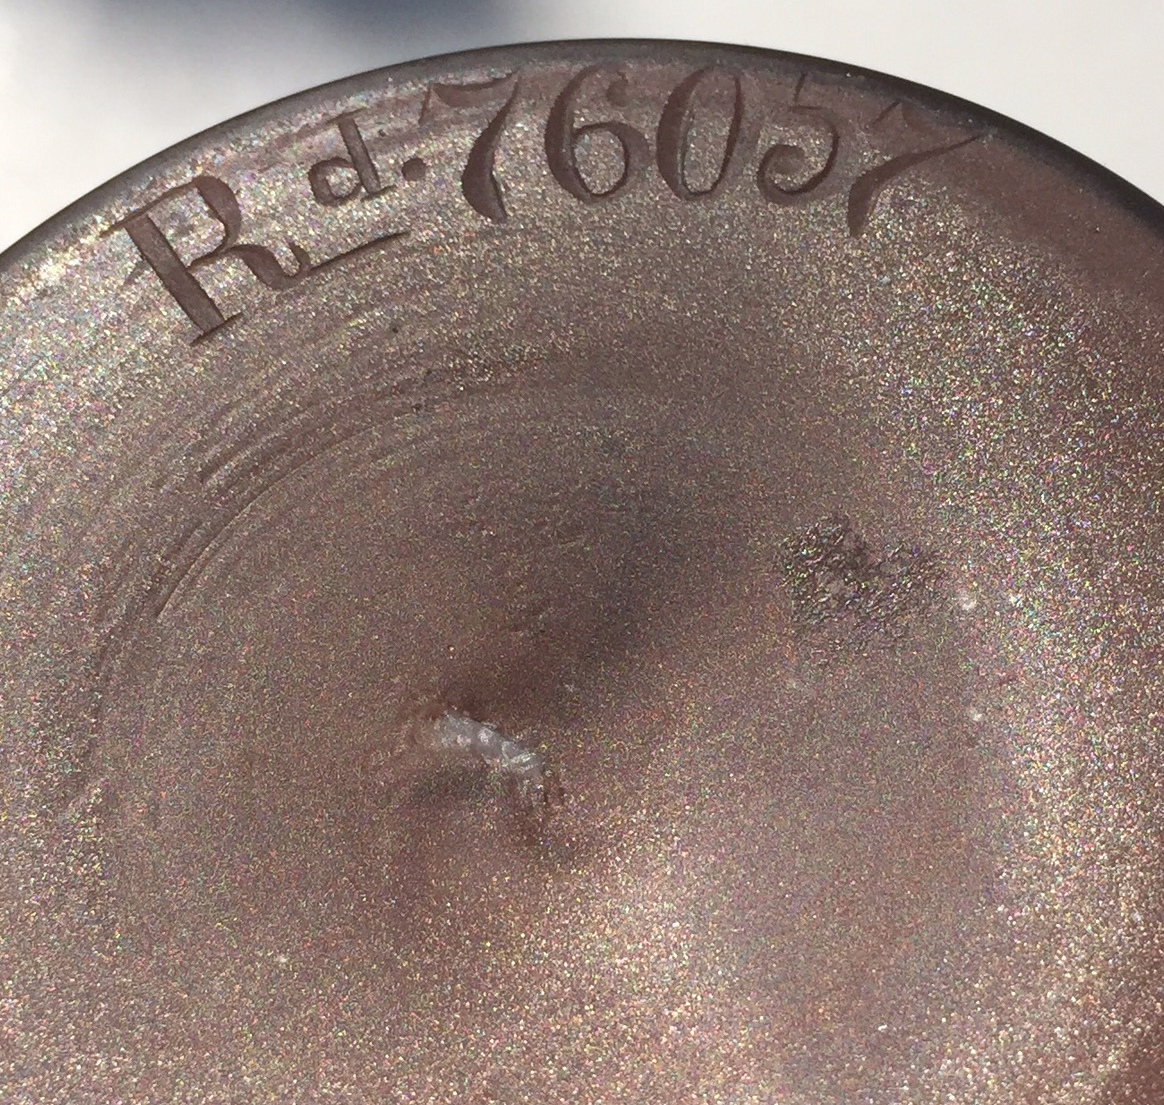 English Registry number engraved on Octopus vase